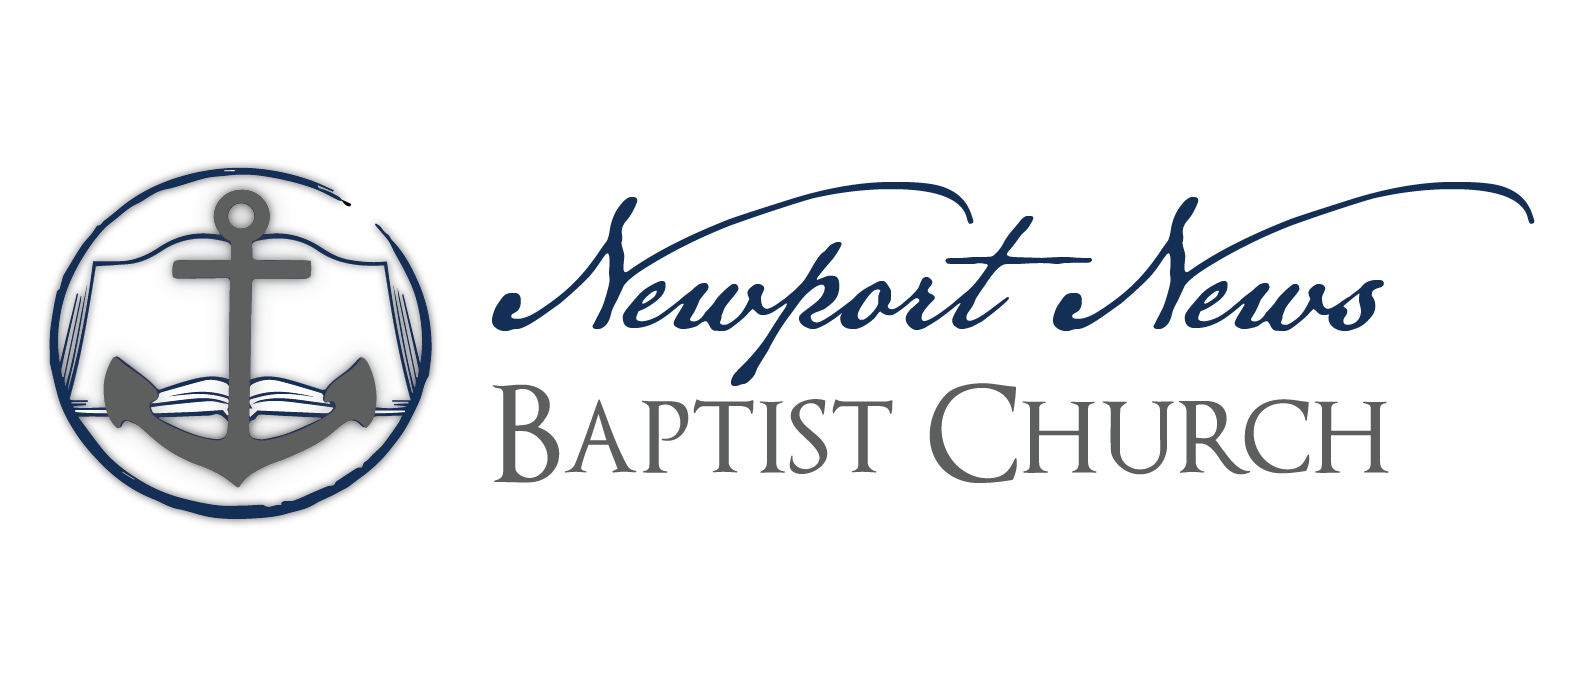 Newport News Baptist Church